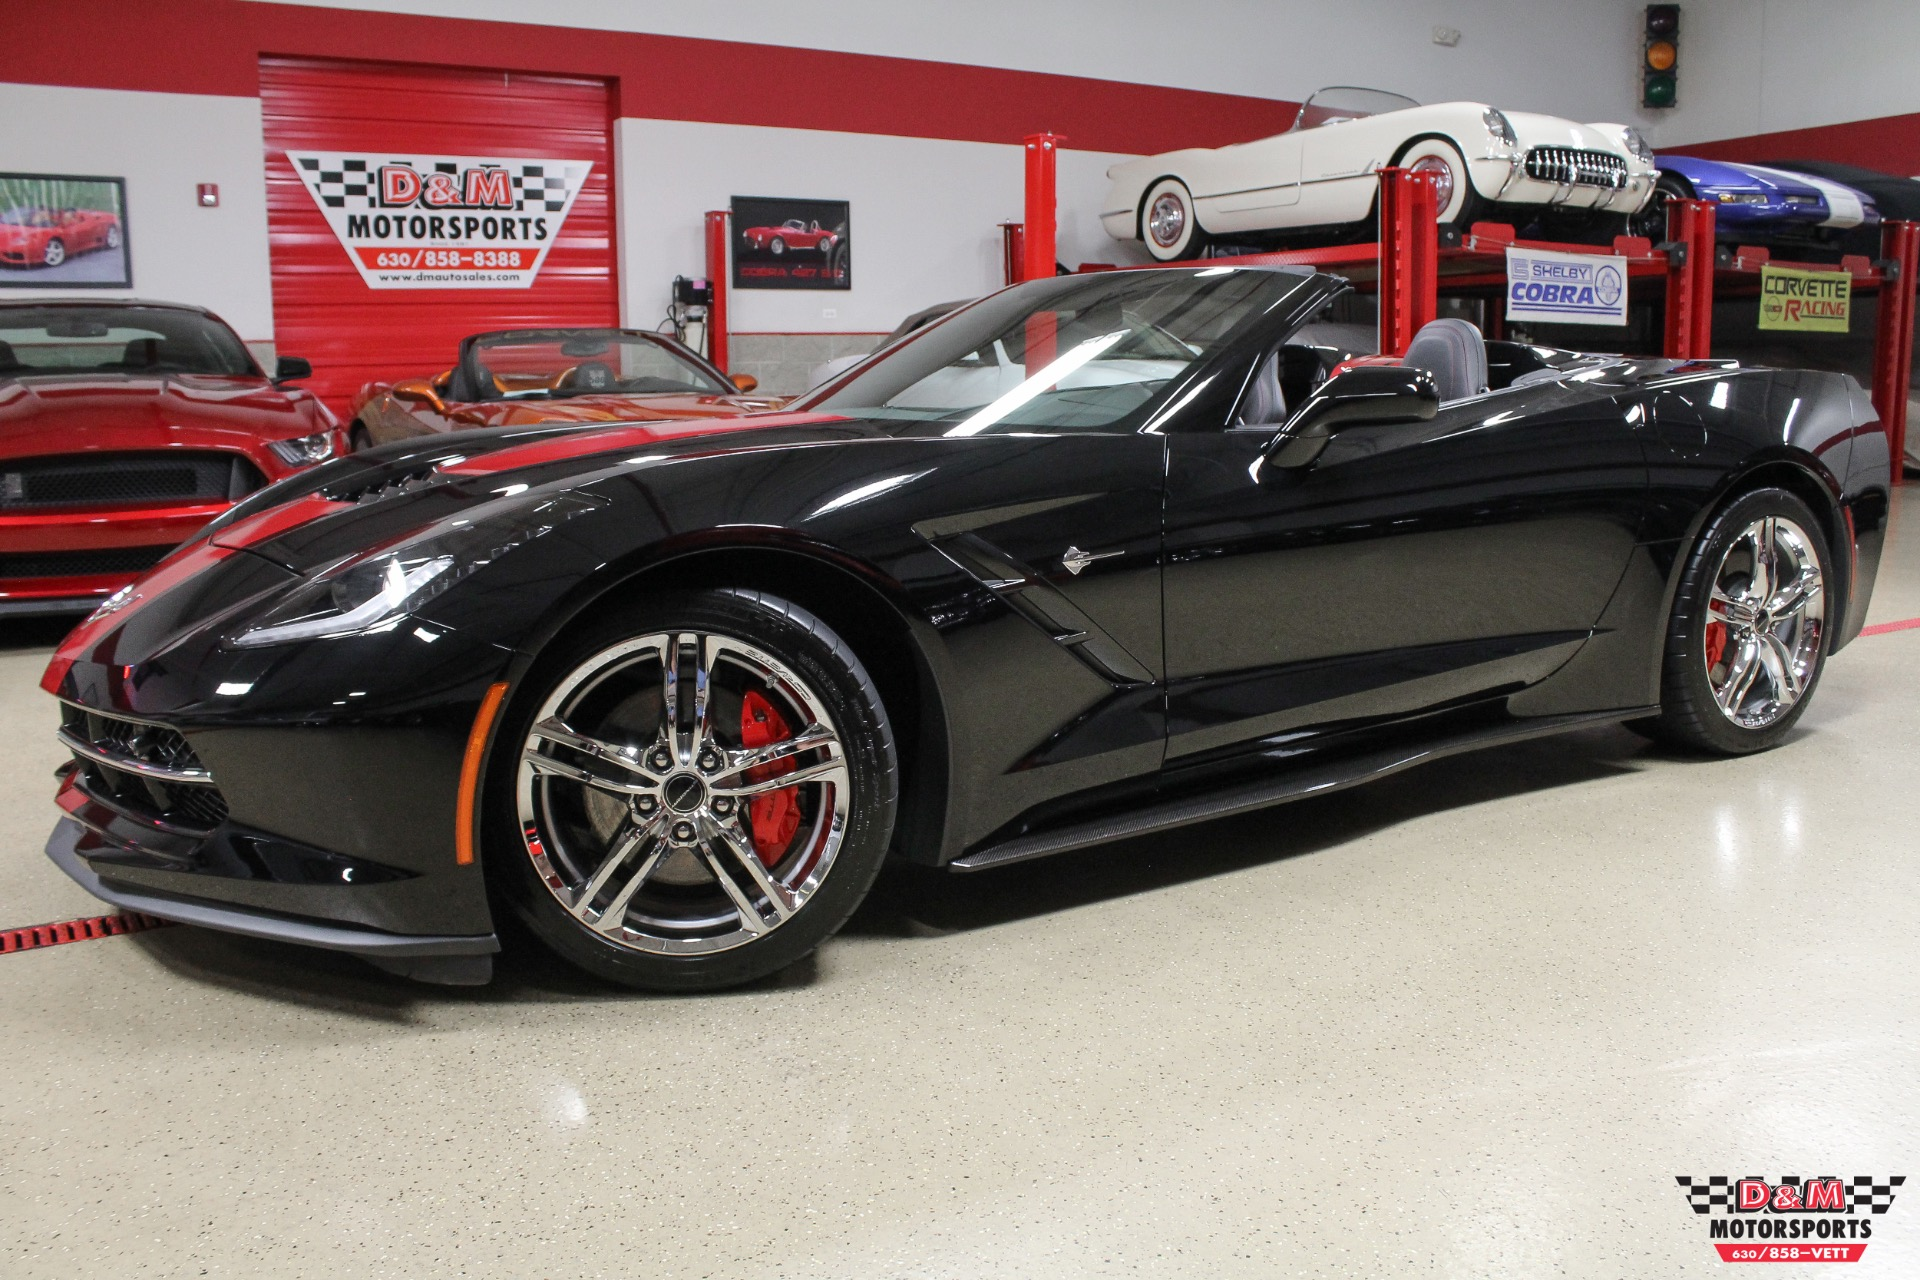 2016 Chevrolet Corvette Stingray Convertible Stock M6612 for sale